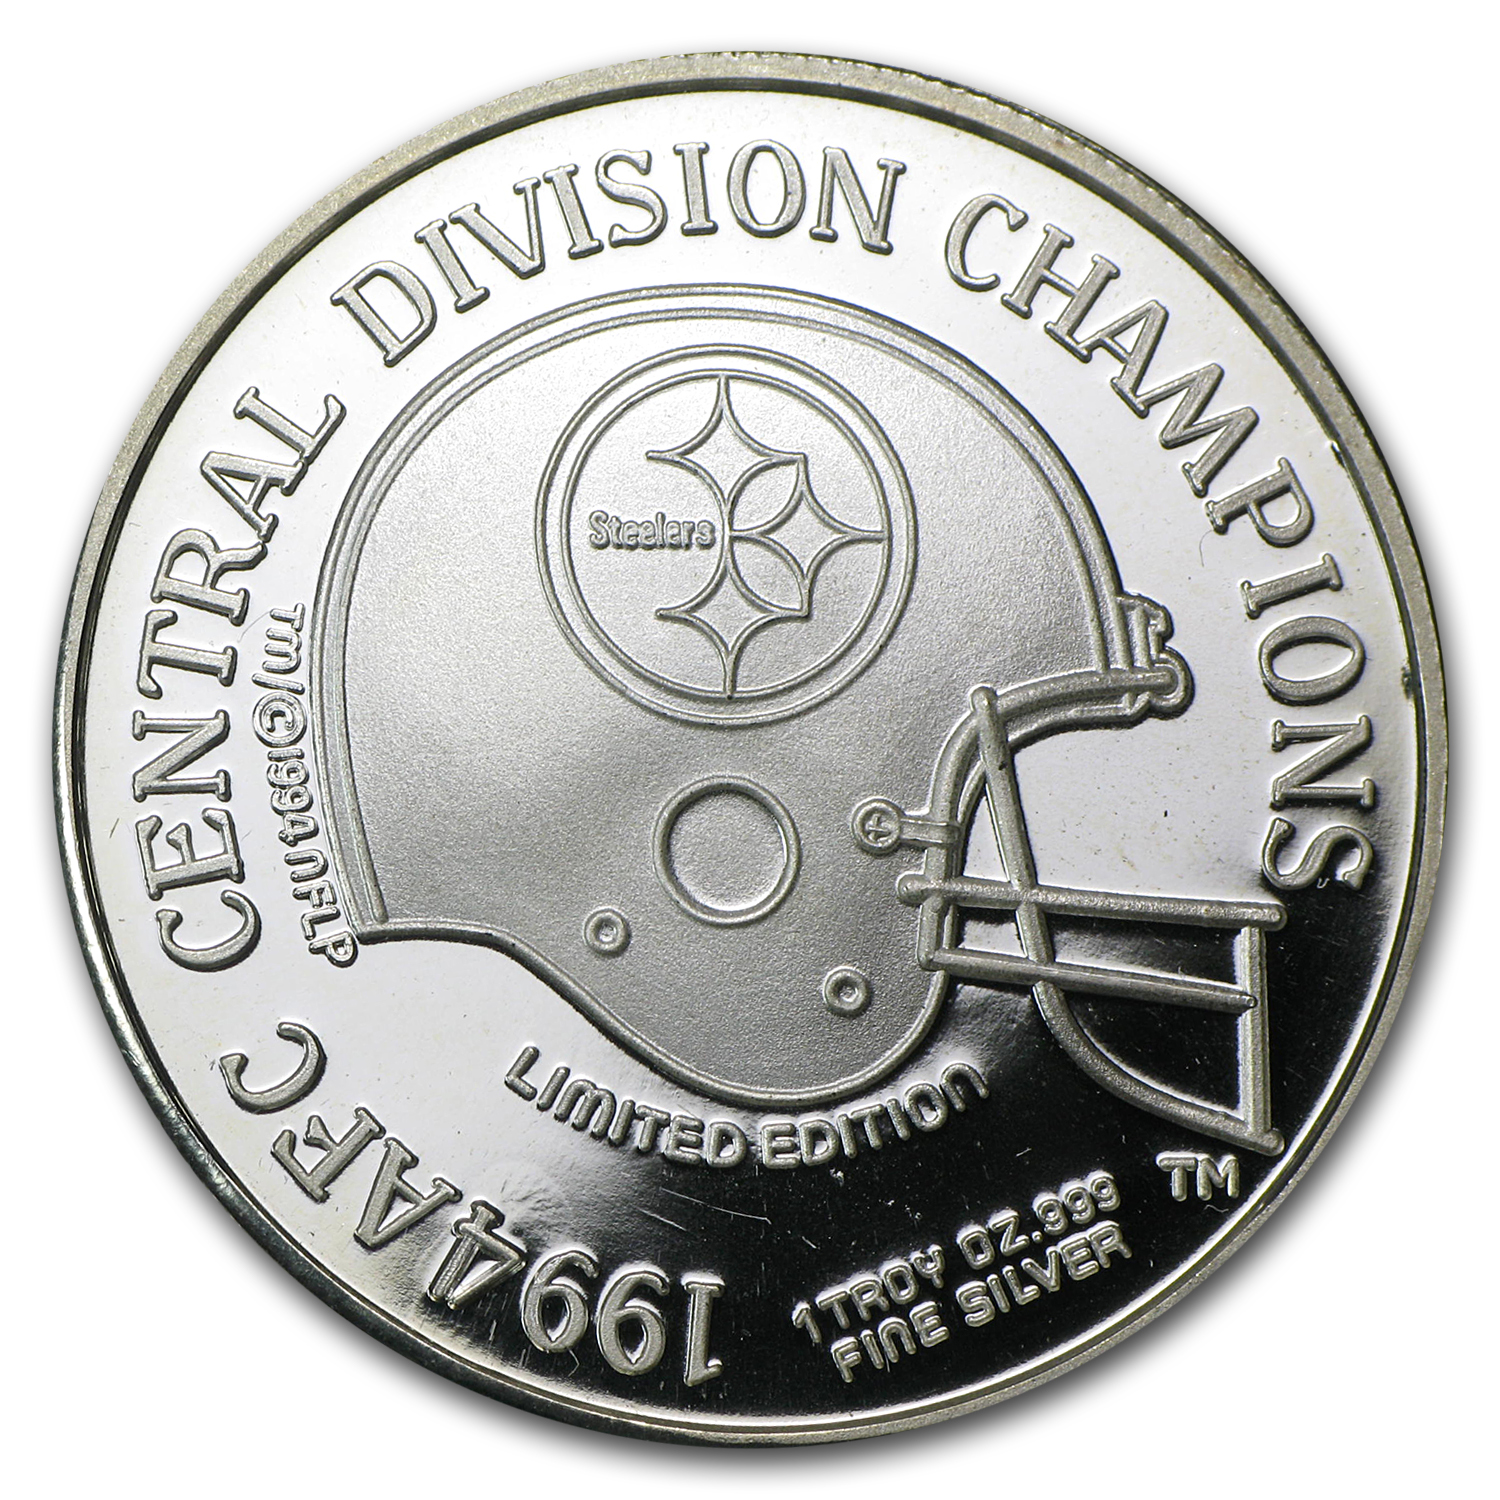 1 oz Silver Round - AFC Central Division Champions (1994)